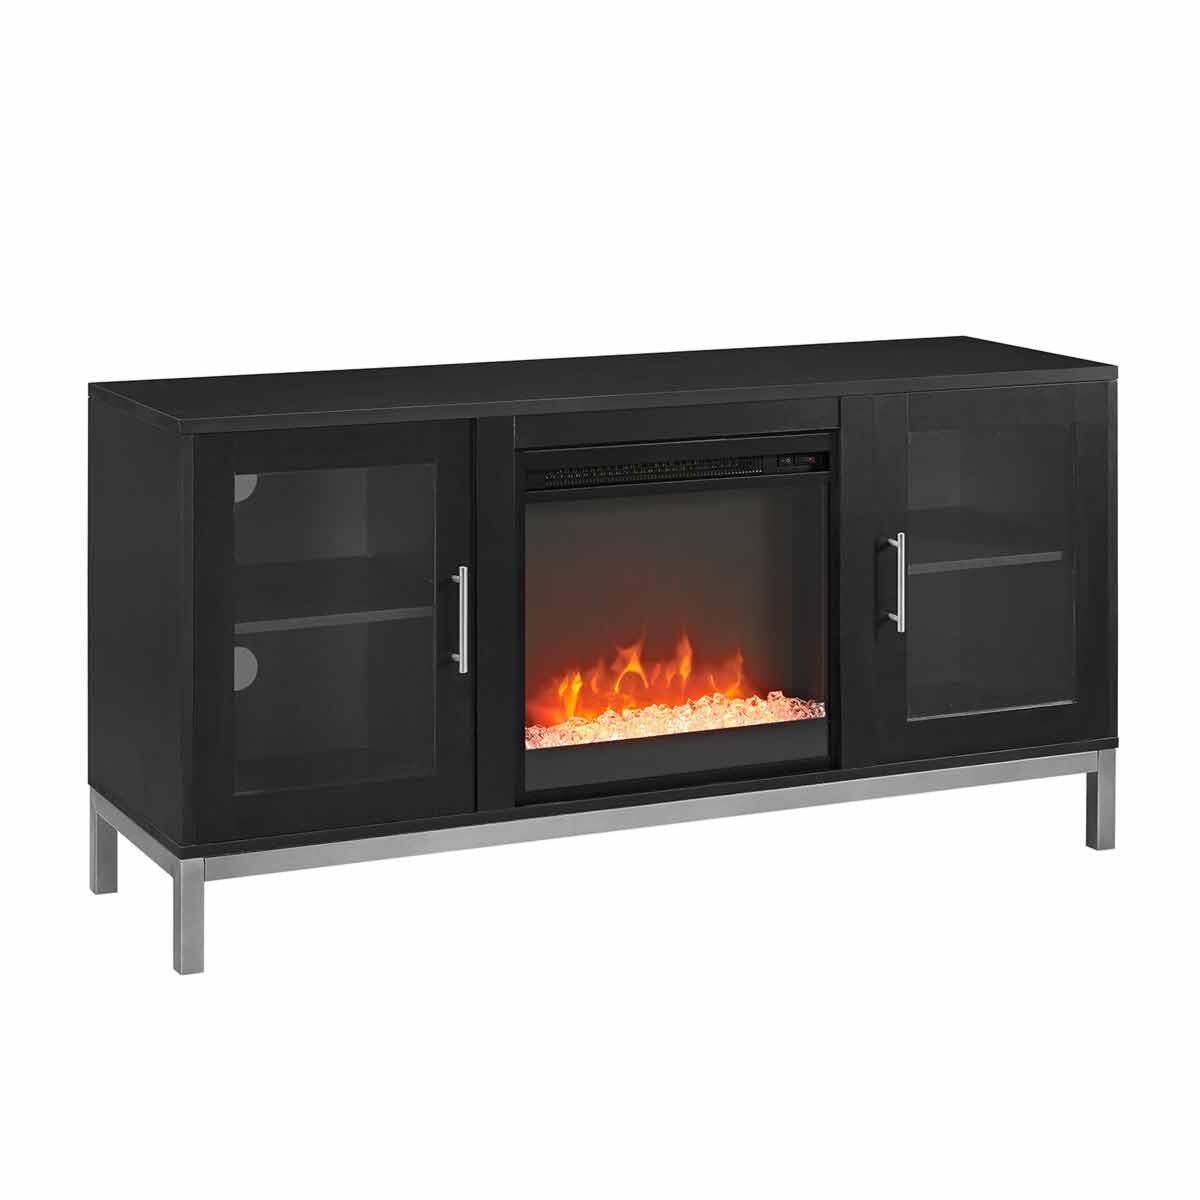 Melfi Modern Fireplace TV Stand Black